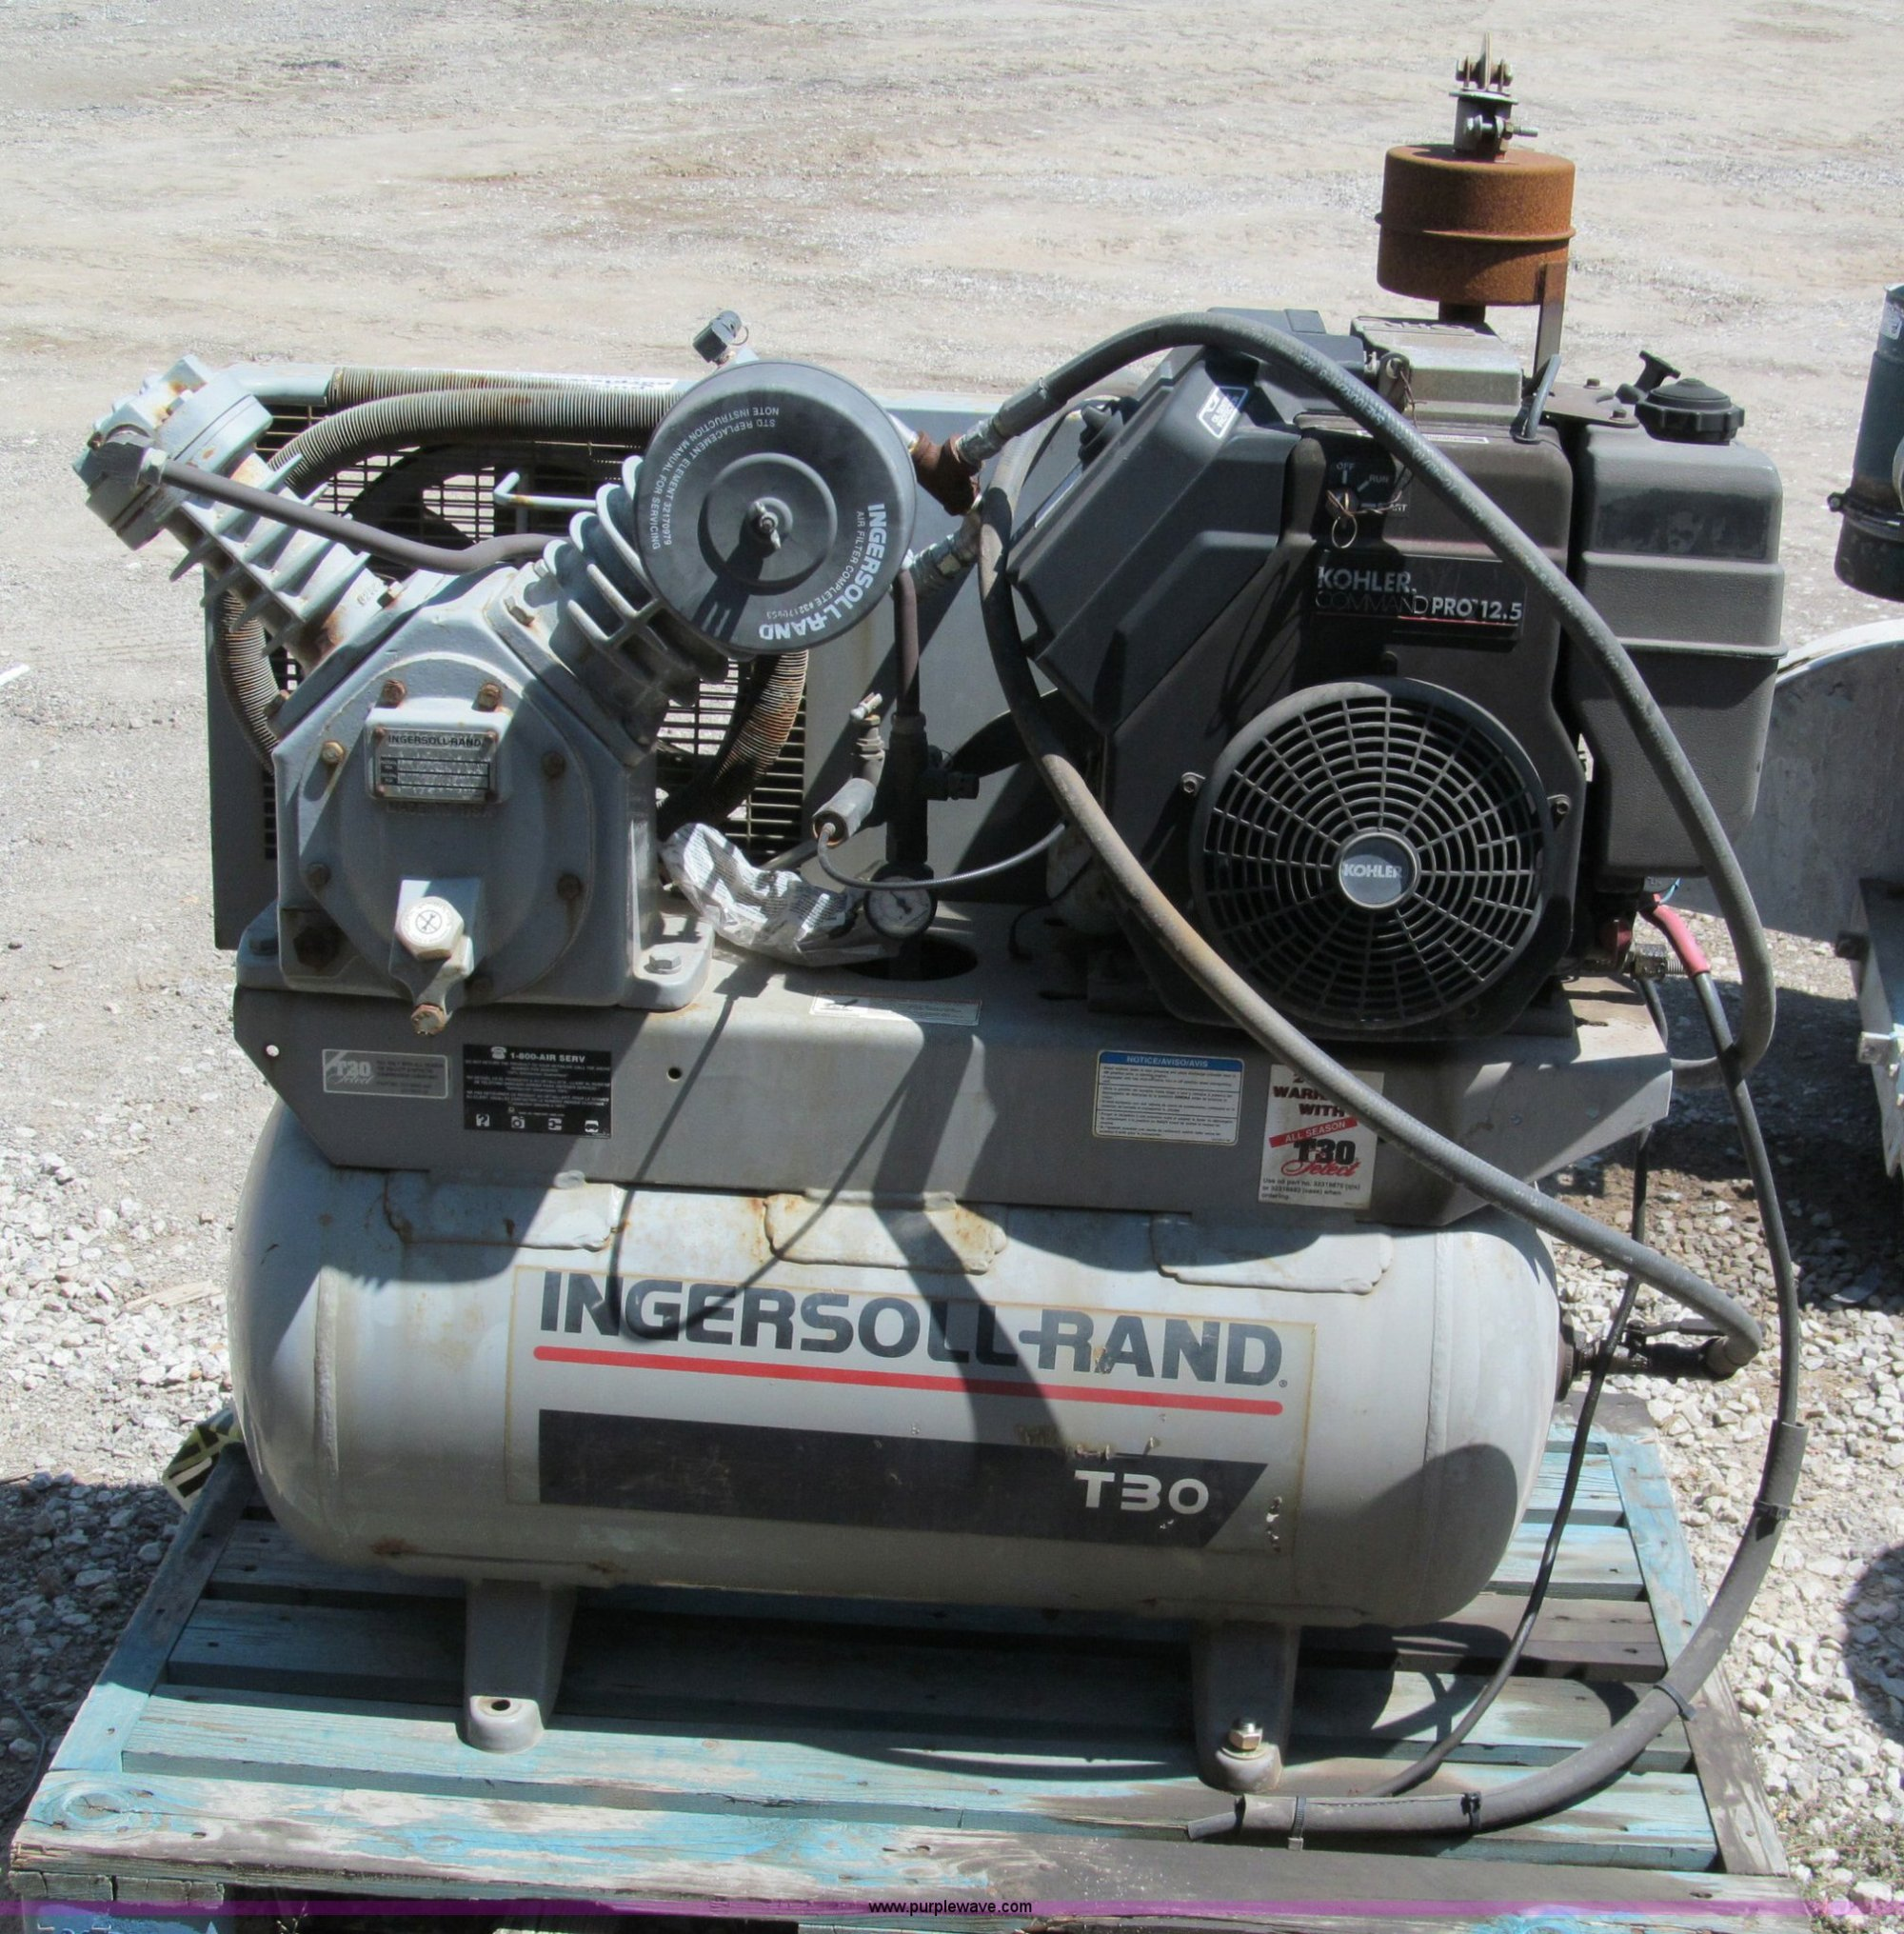 hight resolution of e2050 image for item e2050 ingersoll rand t30 air compressor